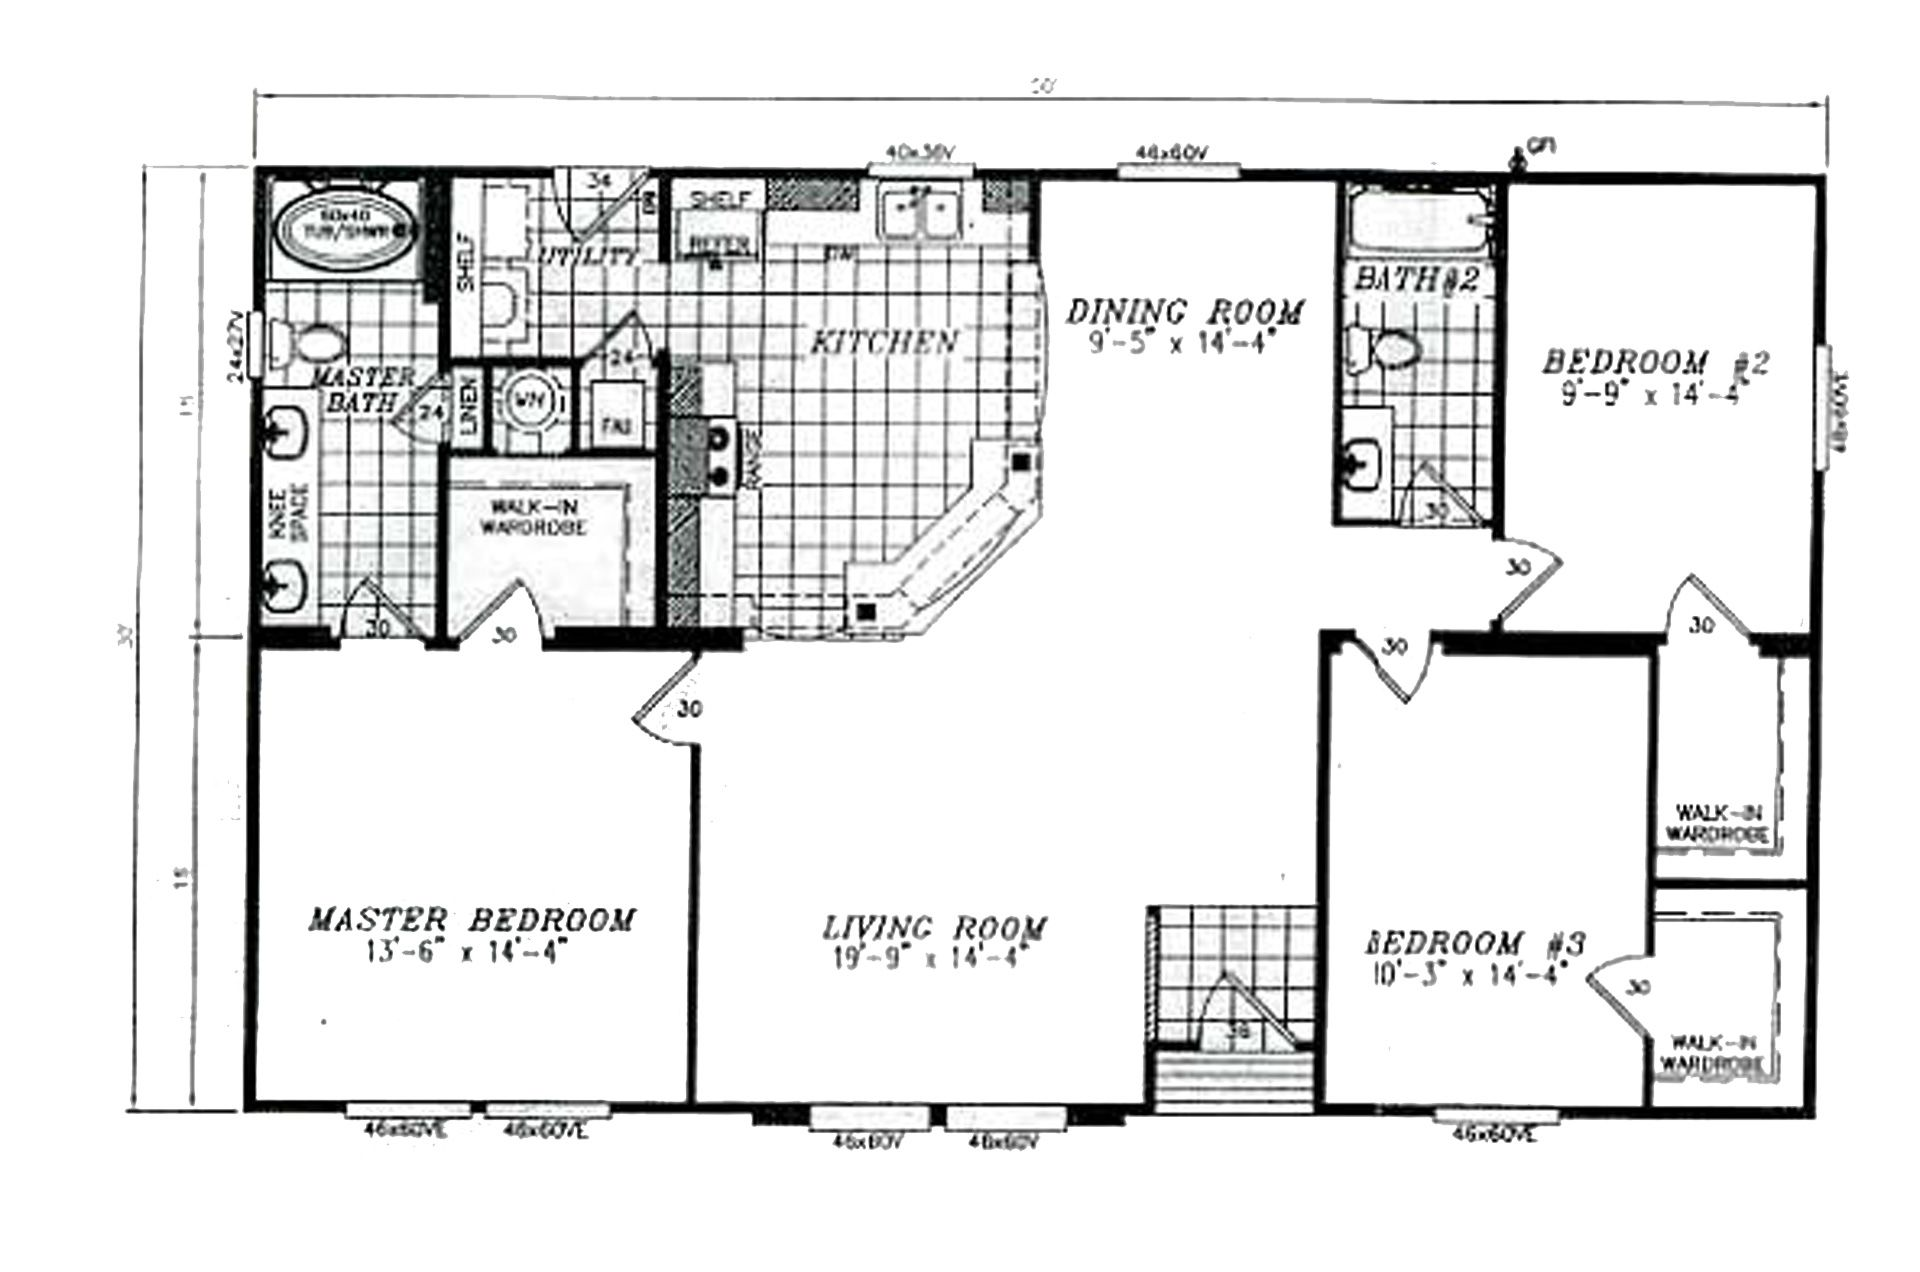 Manufactured home floor plan 2008 karsten cl 250a for 30x50 house floor plans